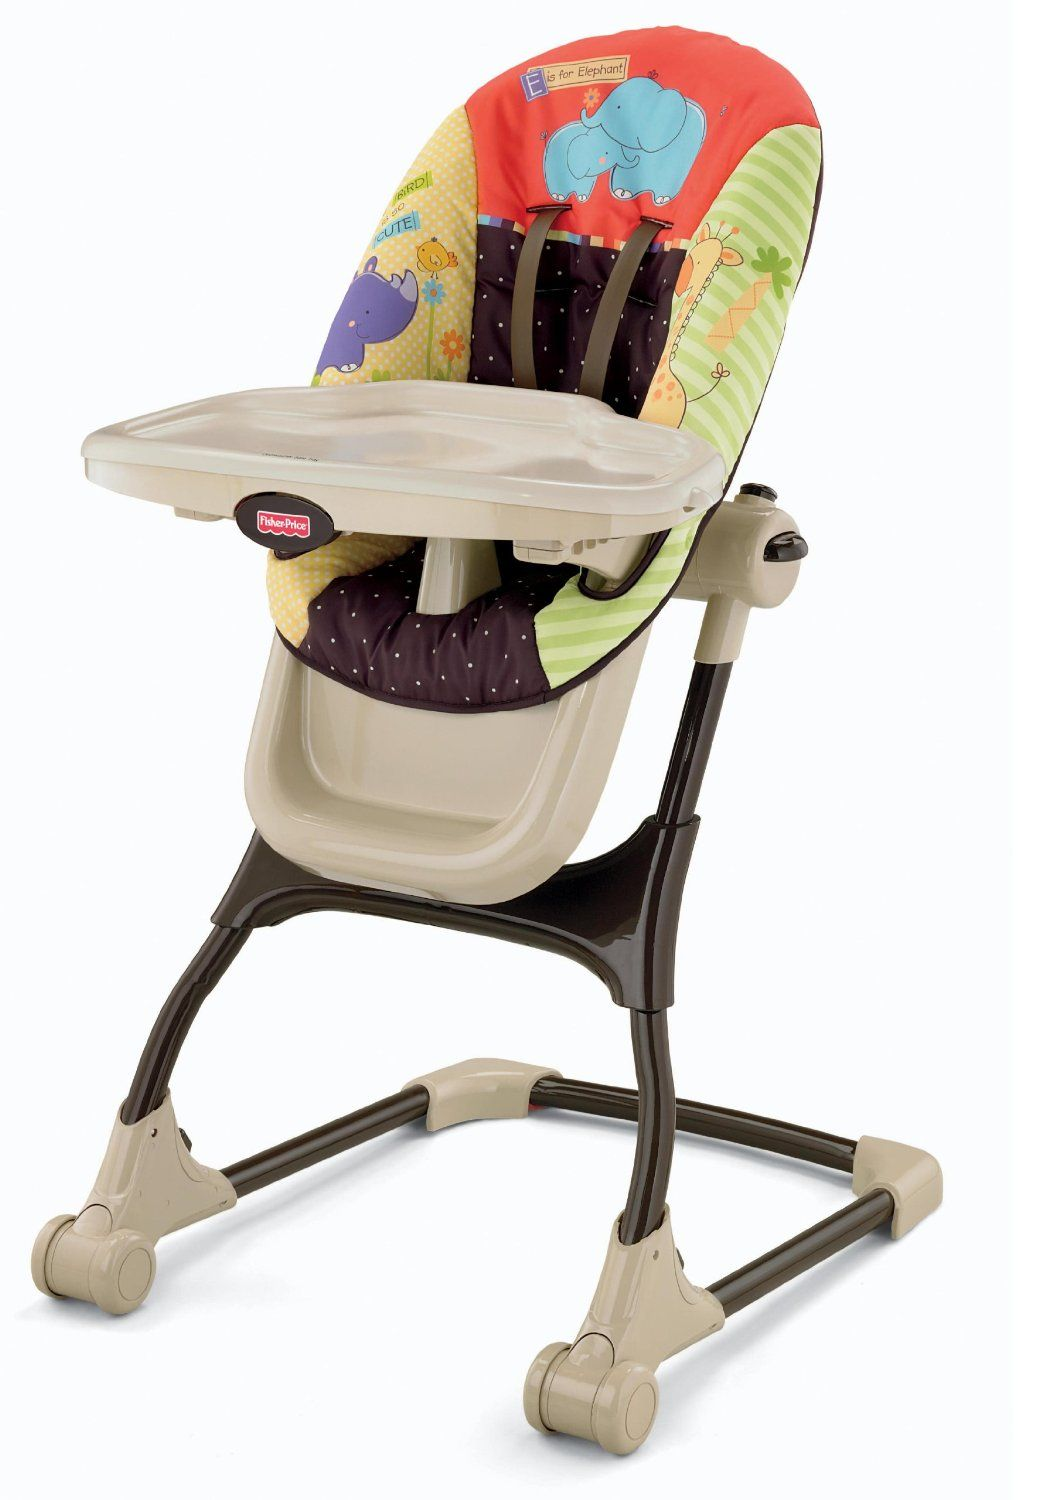 16 Cute Baby High Chairs for Boys and Girls Adorable